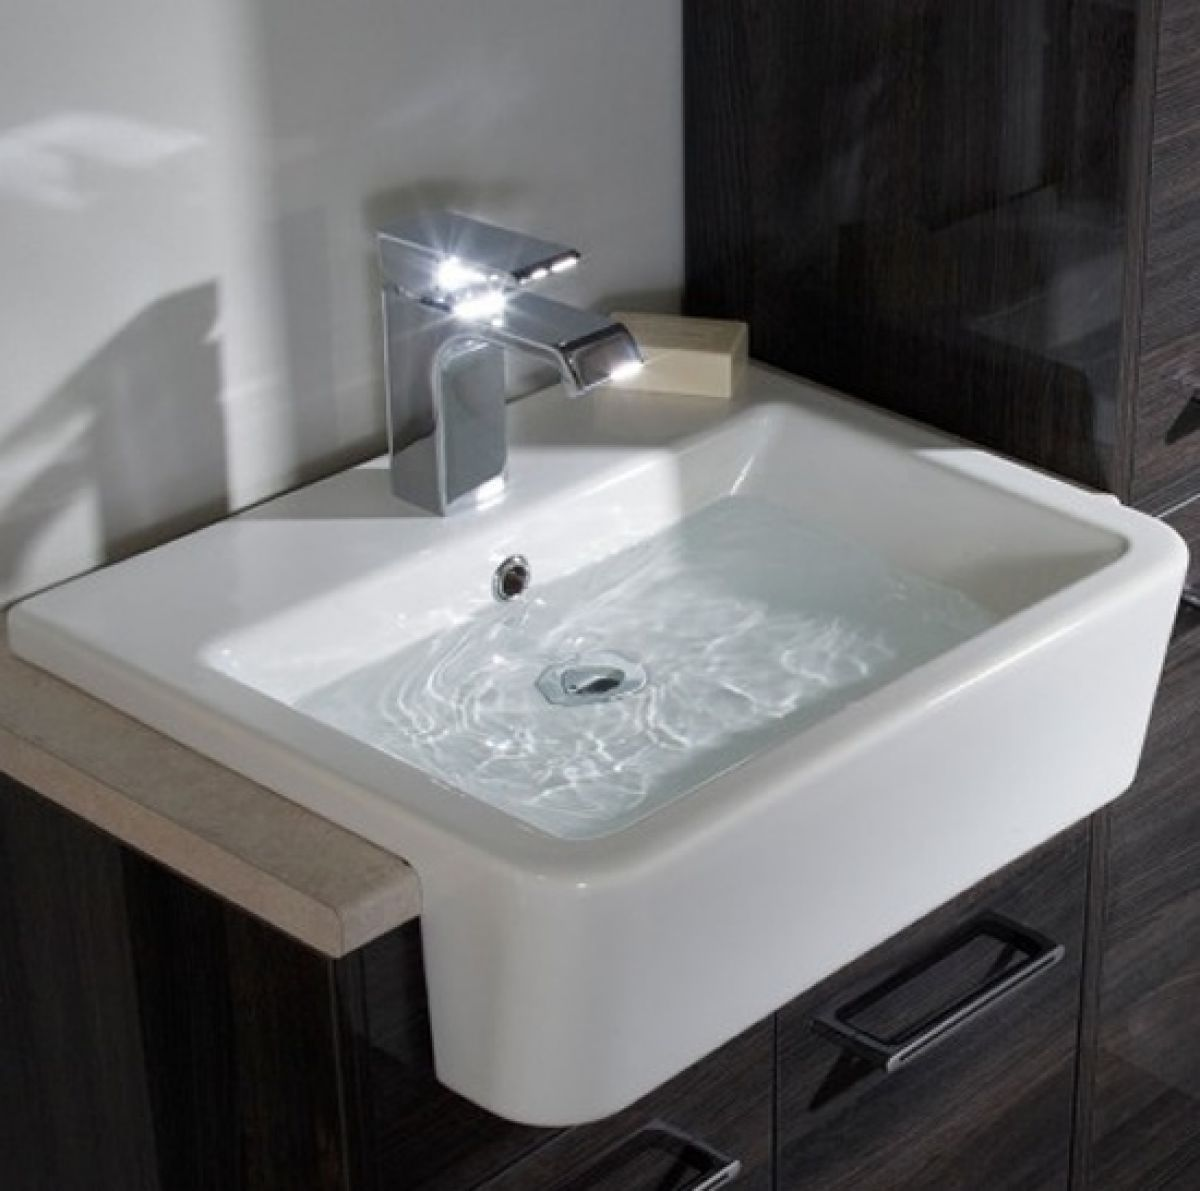 roper rhodes geo semi countertop basin uk bathrooms. Black Bedroom Furniture Sets. Home Design Ideas